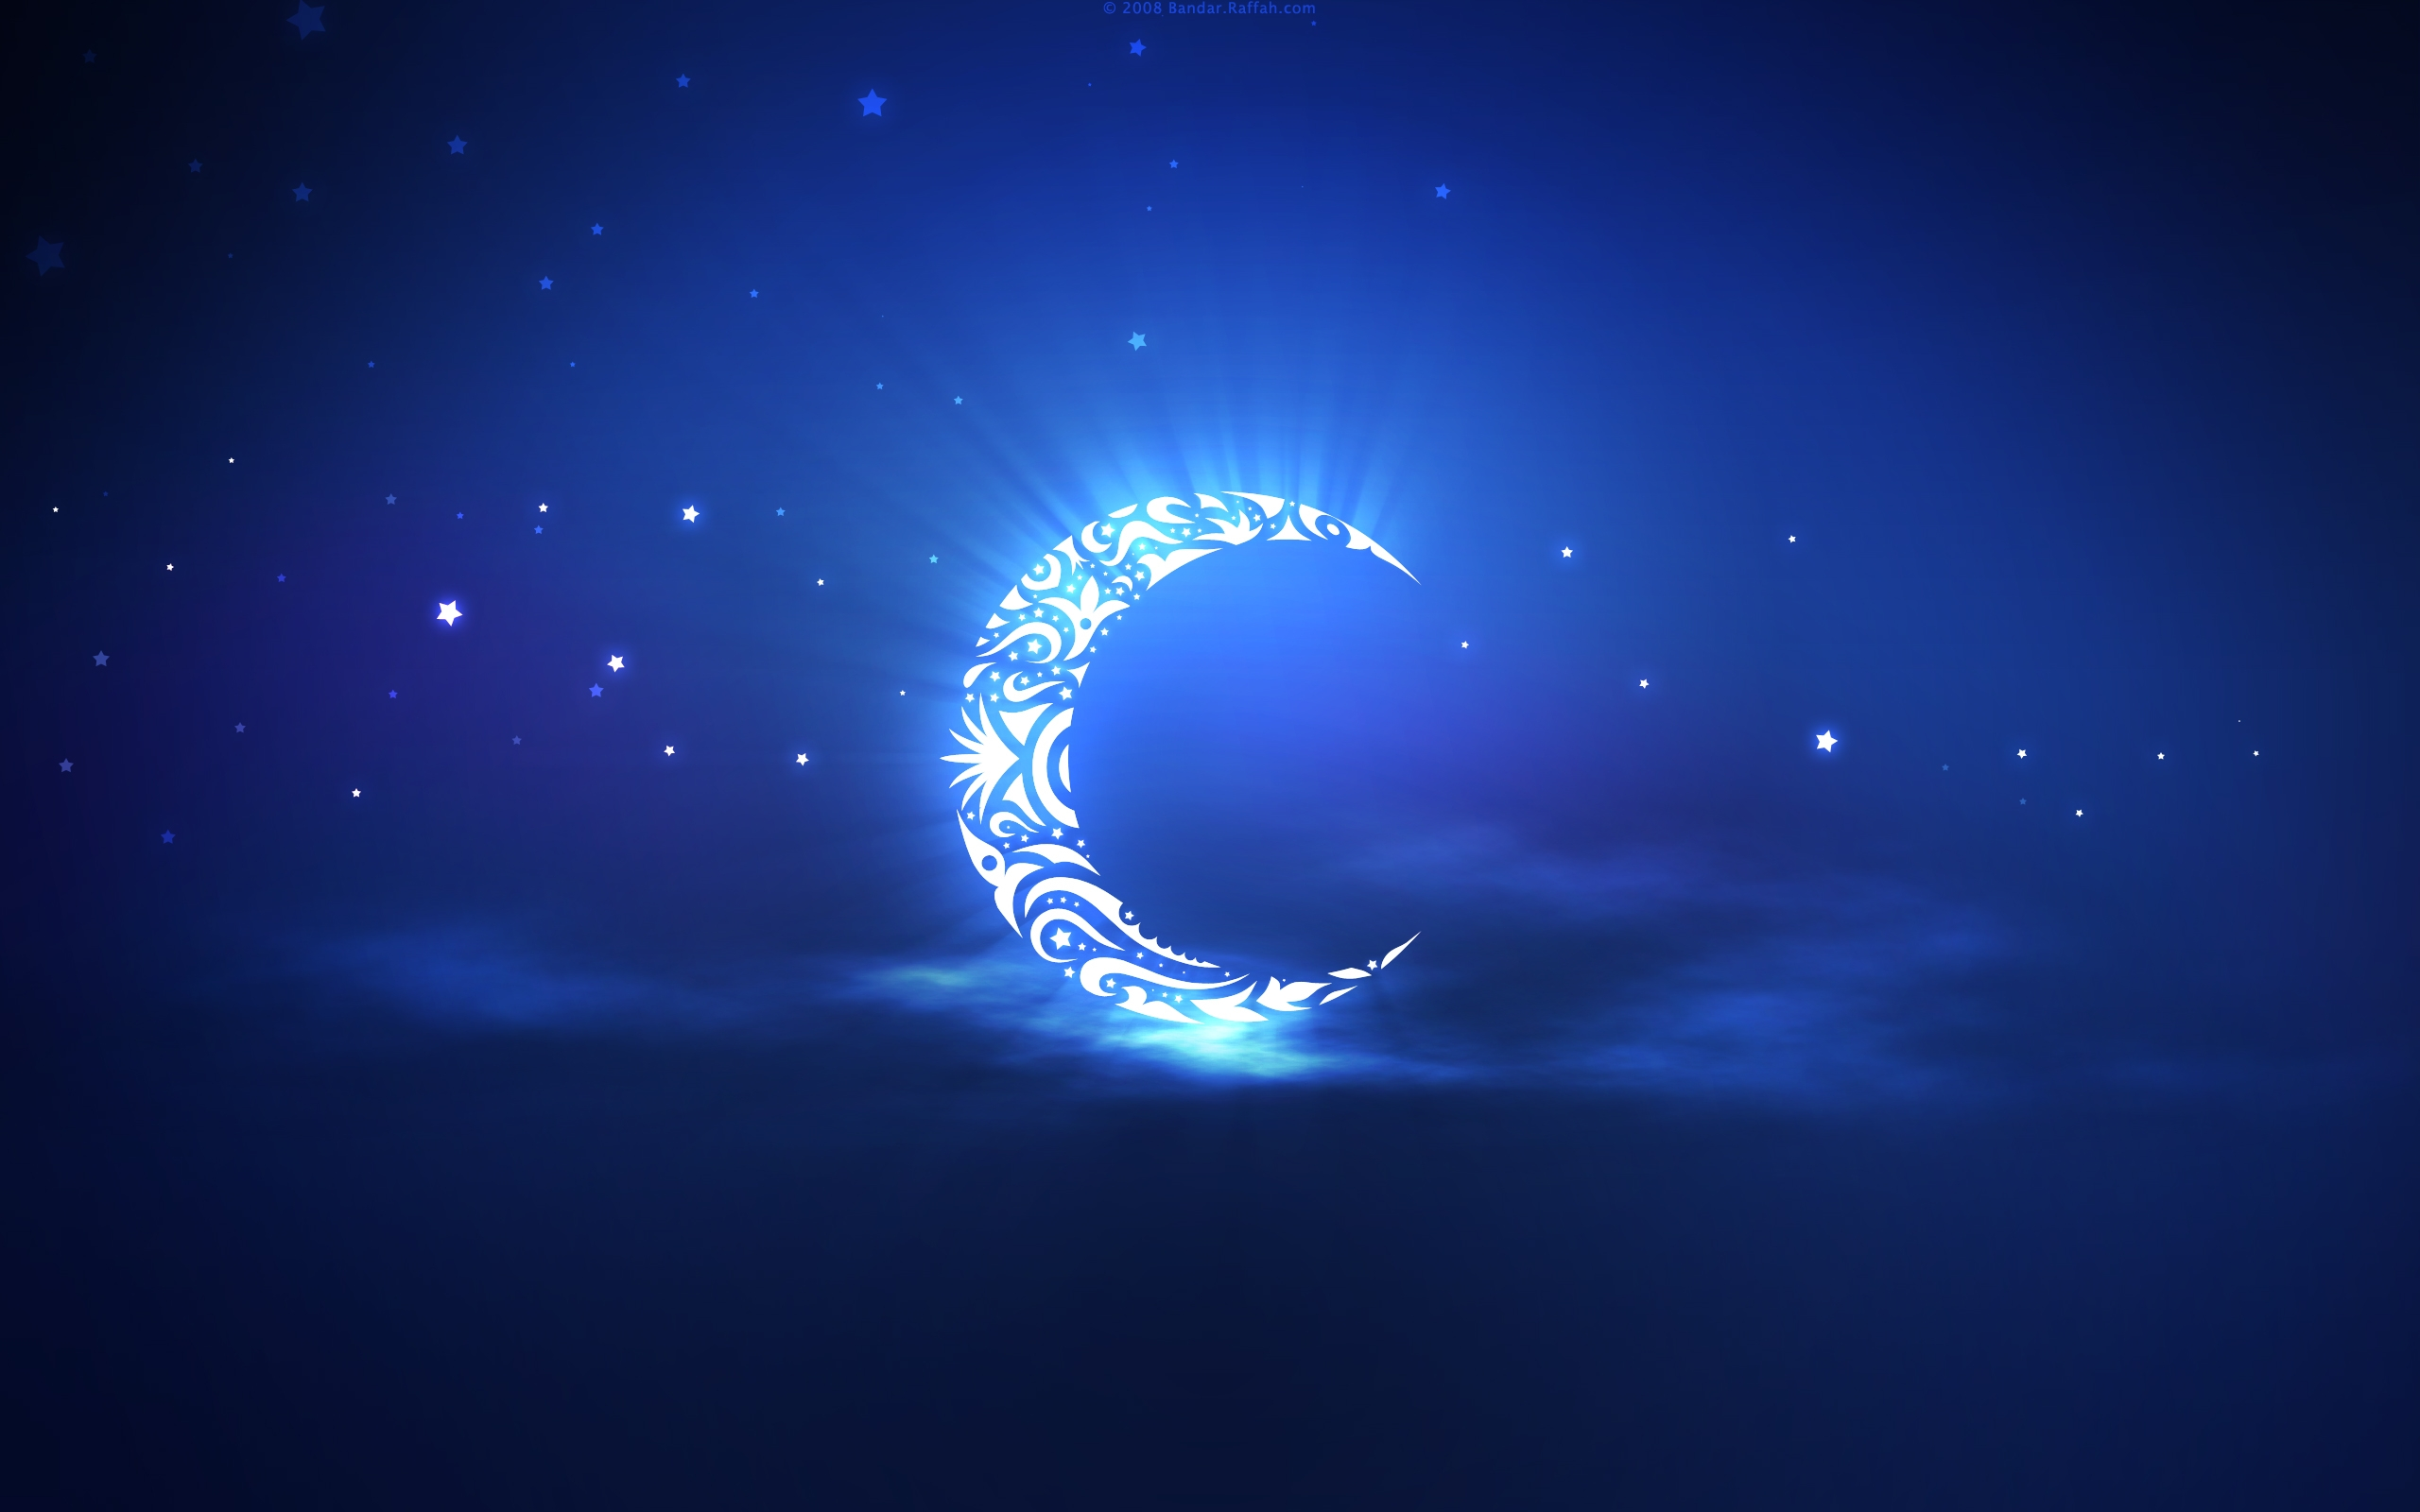 Awesome Crescent Moon   Cool Wallpapers 2560x1600